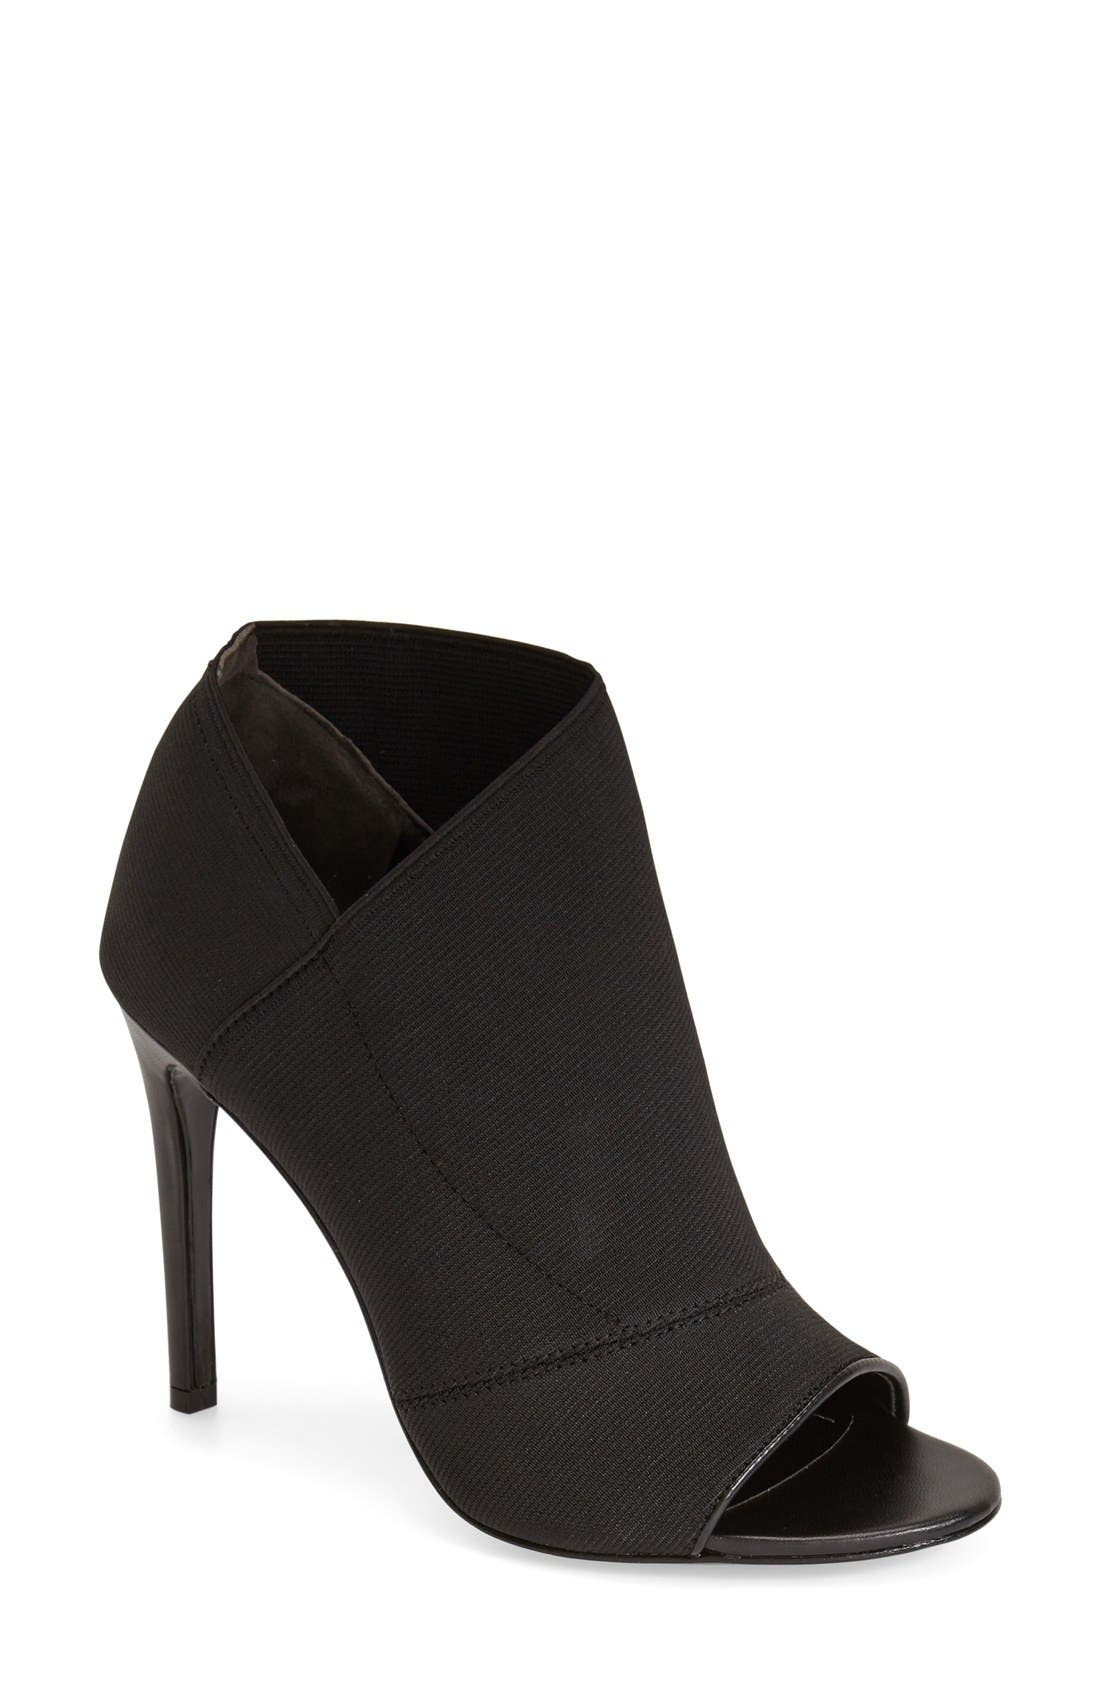 Alternate Image 1 Selected - Charles David 'Diana' Stretch Bootie (Women)